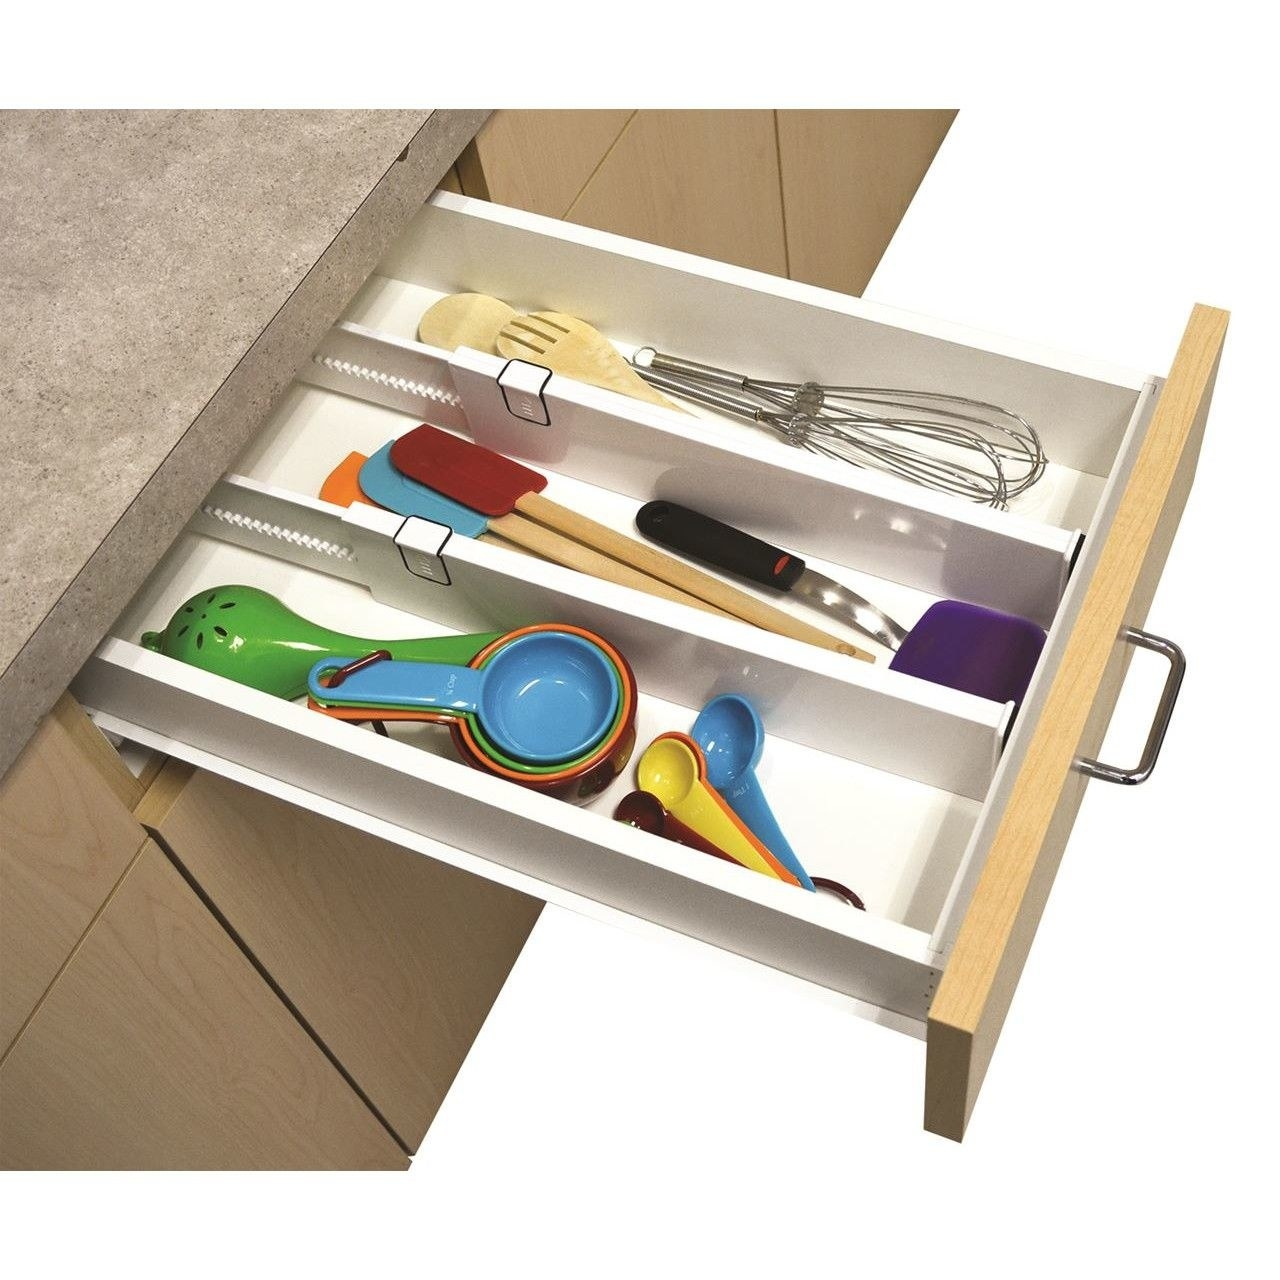 "The dividers expand from 14"" to 21"" and feature non-slip grips on their sides. Promising review: ""It fits right into your drawer and lets you use all the space of the drawer."" —Greco